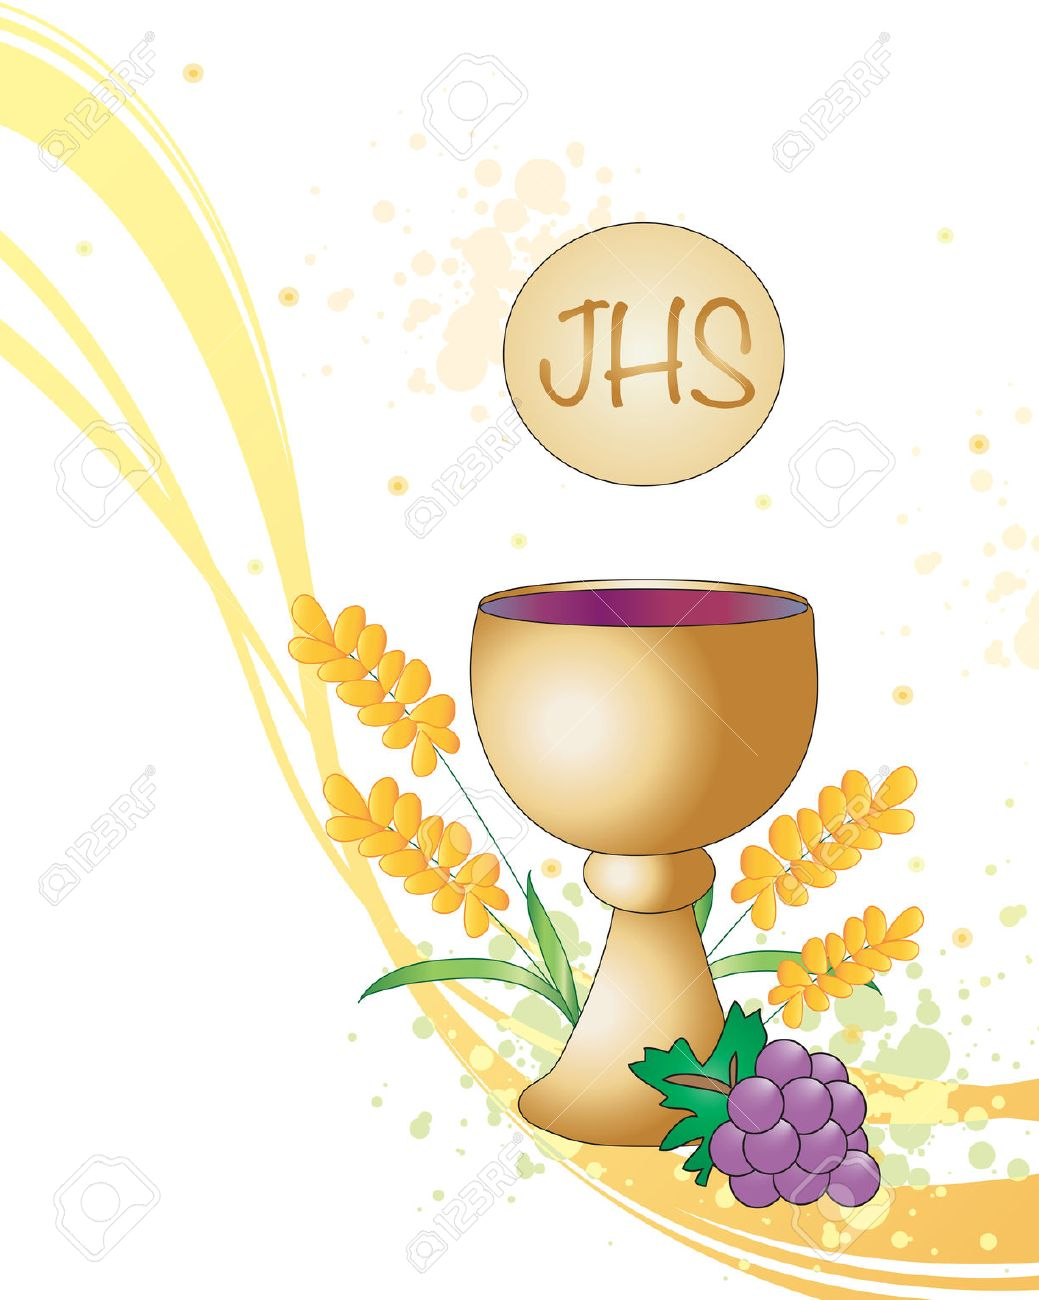 Symbolic Illustration For The First Communion Stock Photo Picture And Royalty Free Image Image 36223586